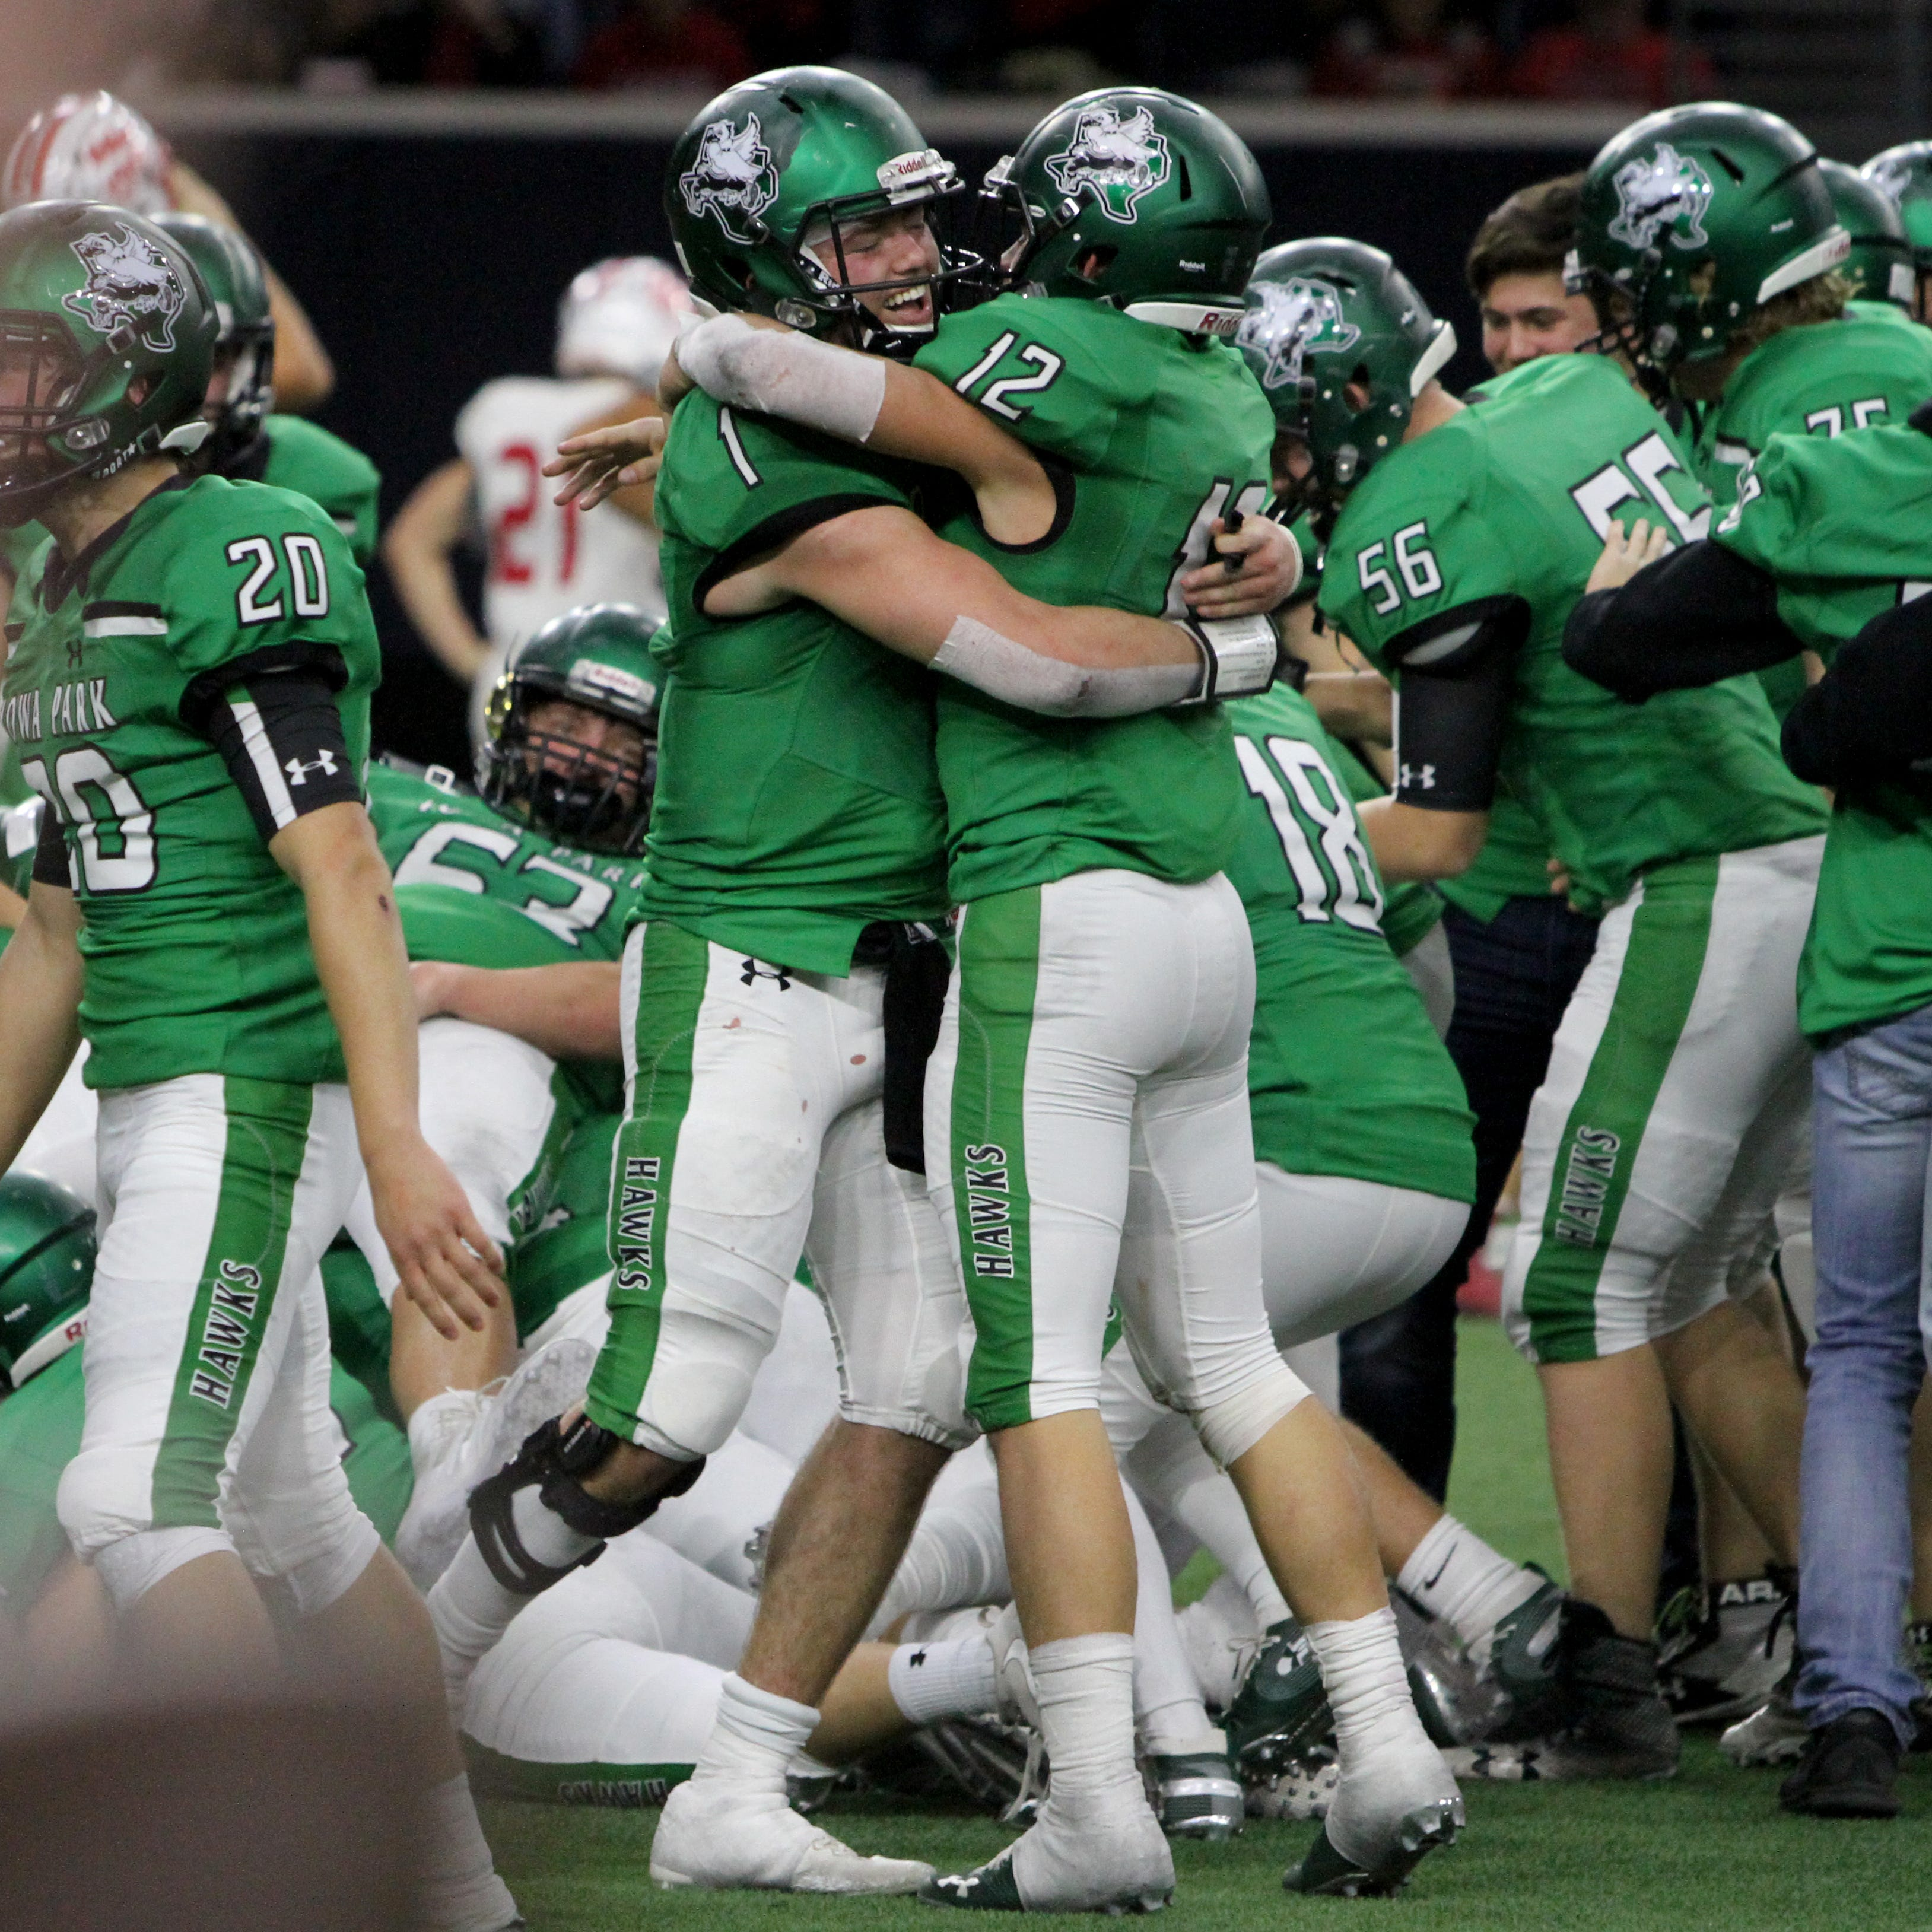 Iowa Park stuns Glen Rose with touchdown in final seconds for regional title